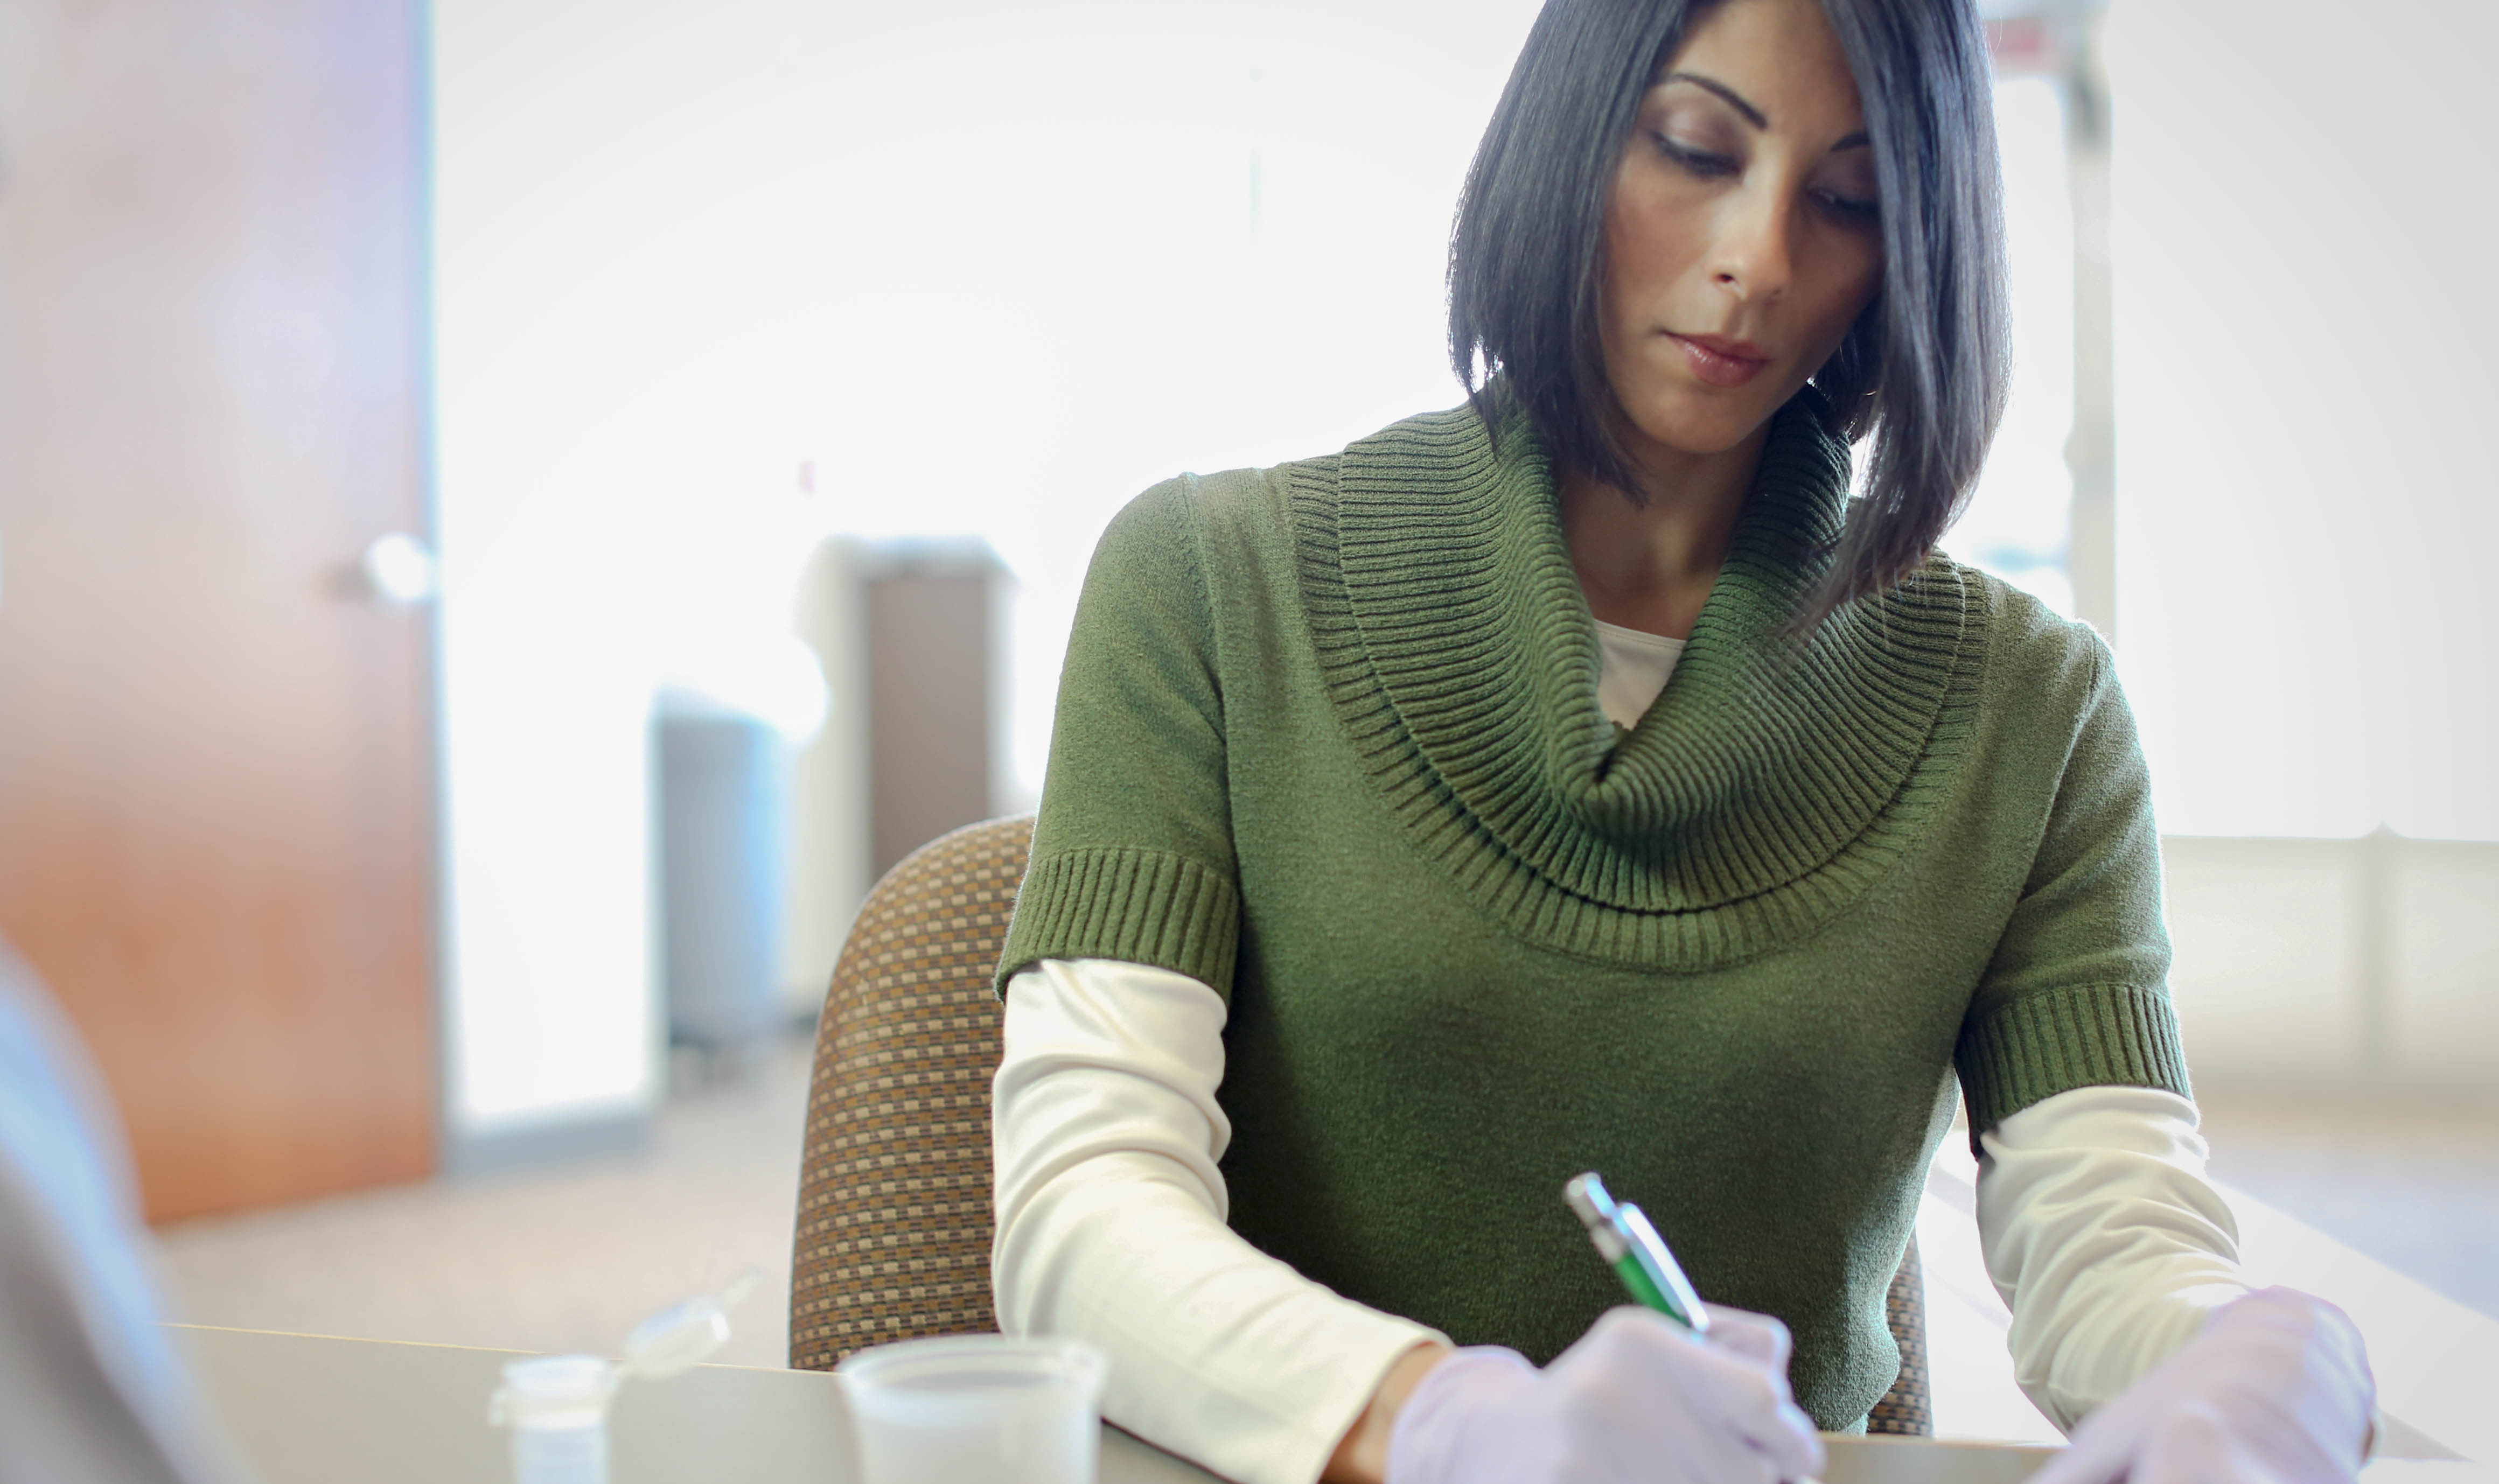 new to drug testing pre employment screening quest diagnostics image of screening